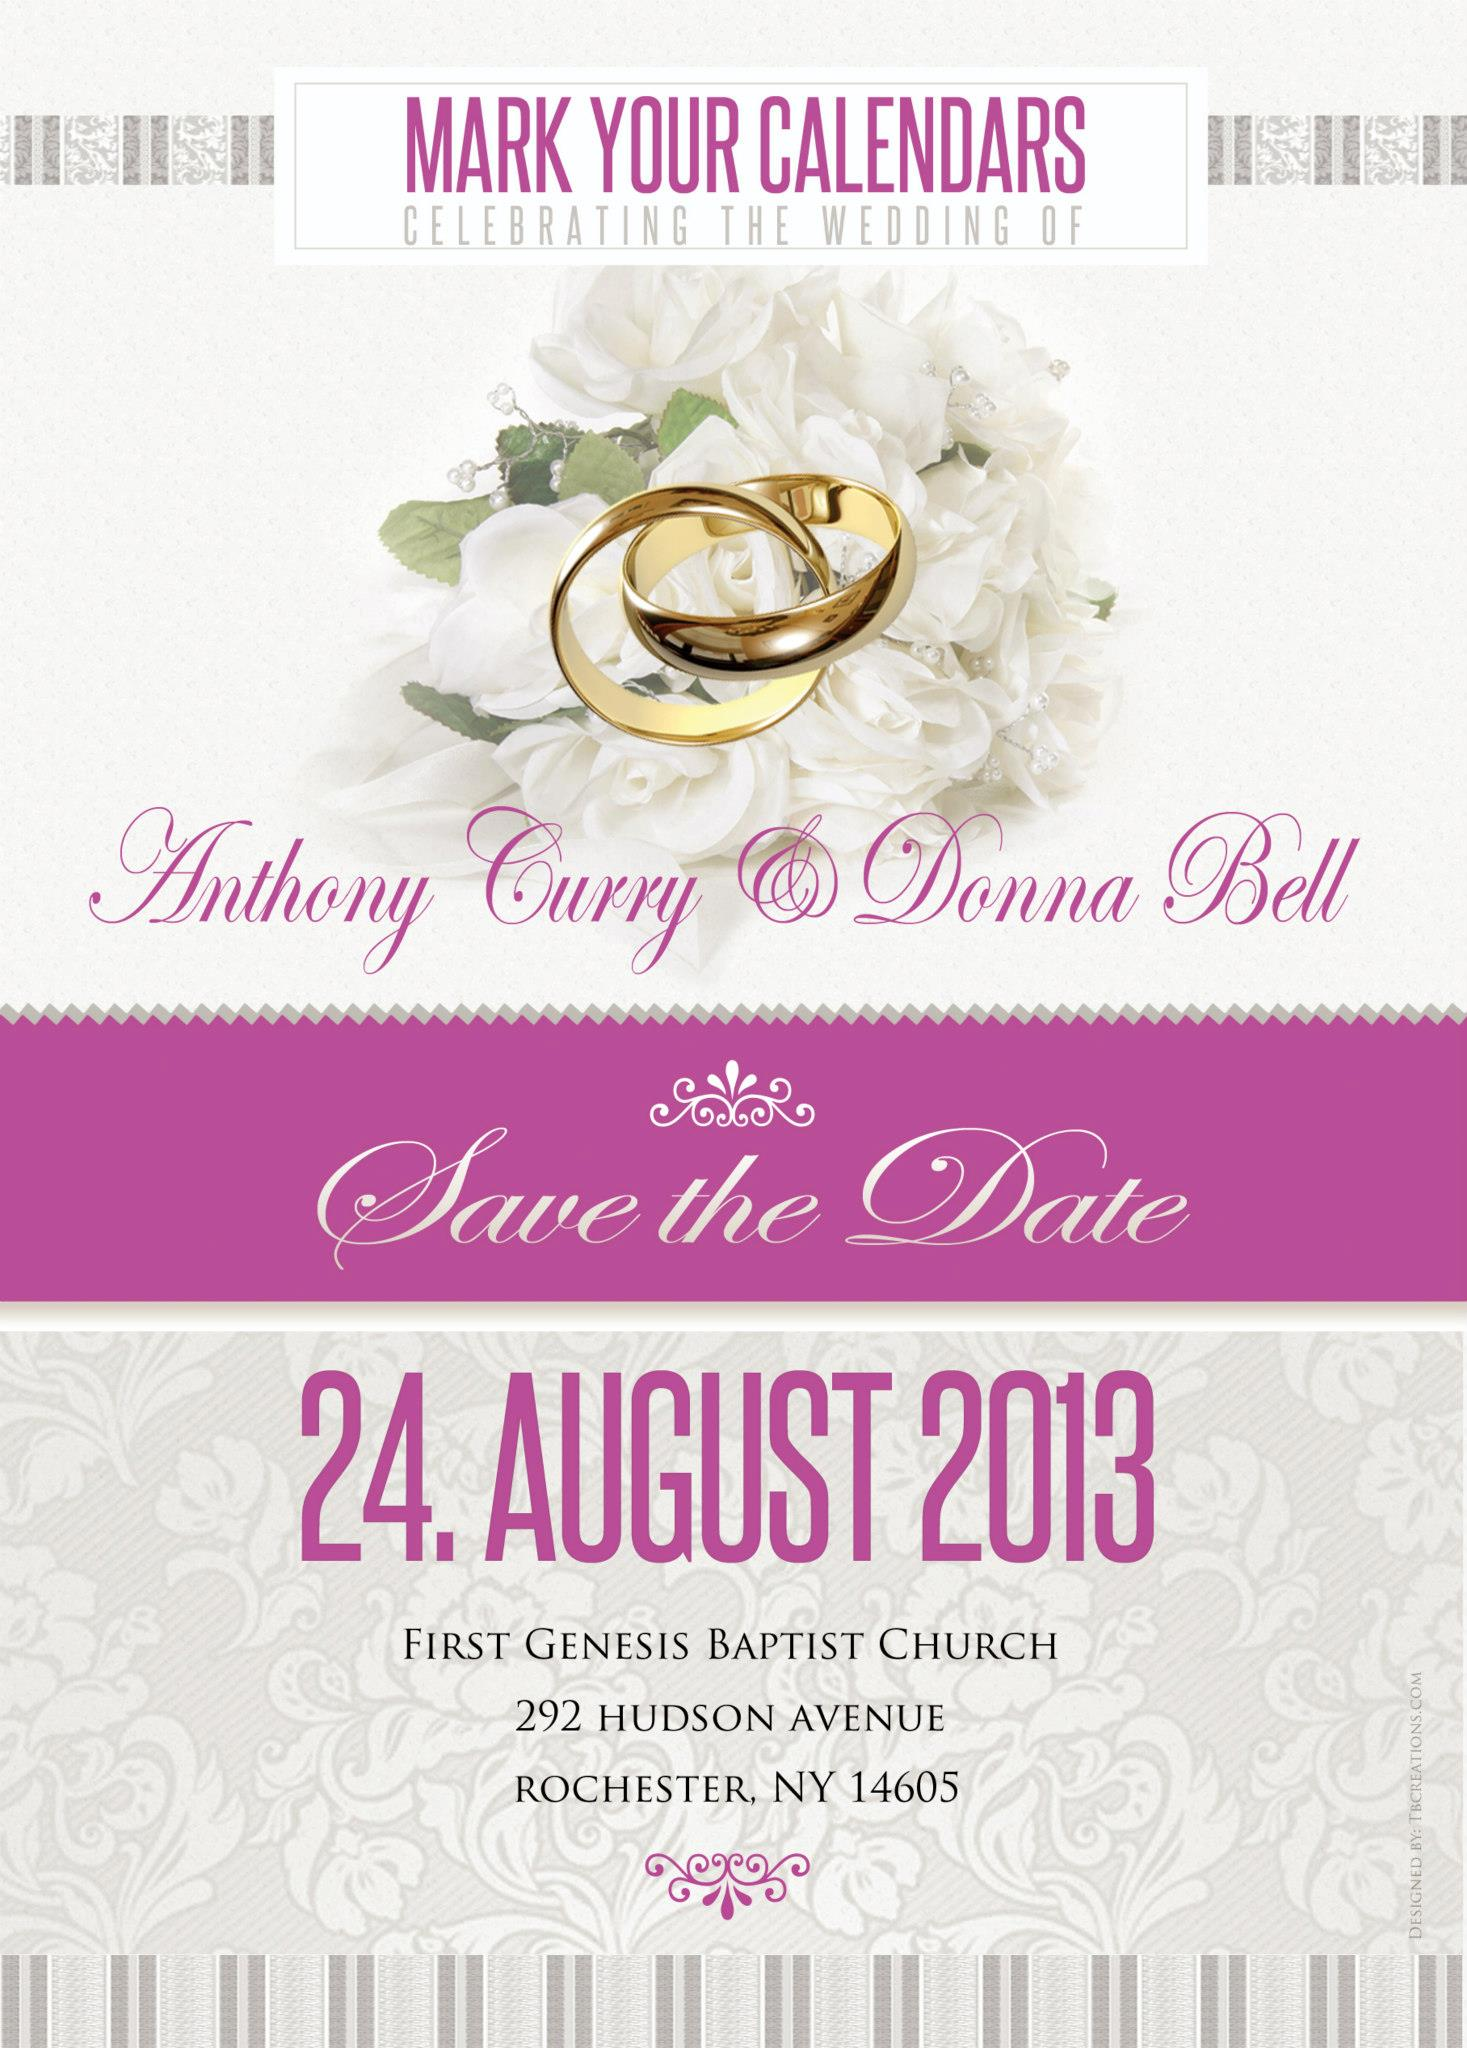 Anthony and Donna Curry Wedding Invite